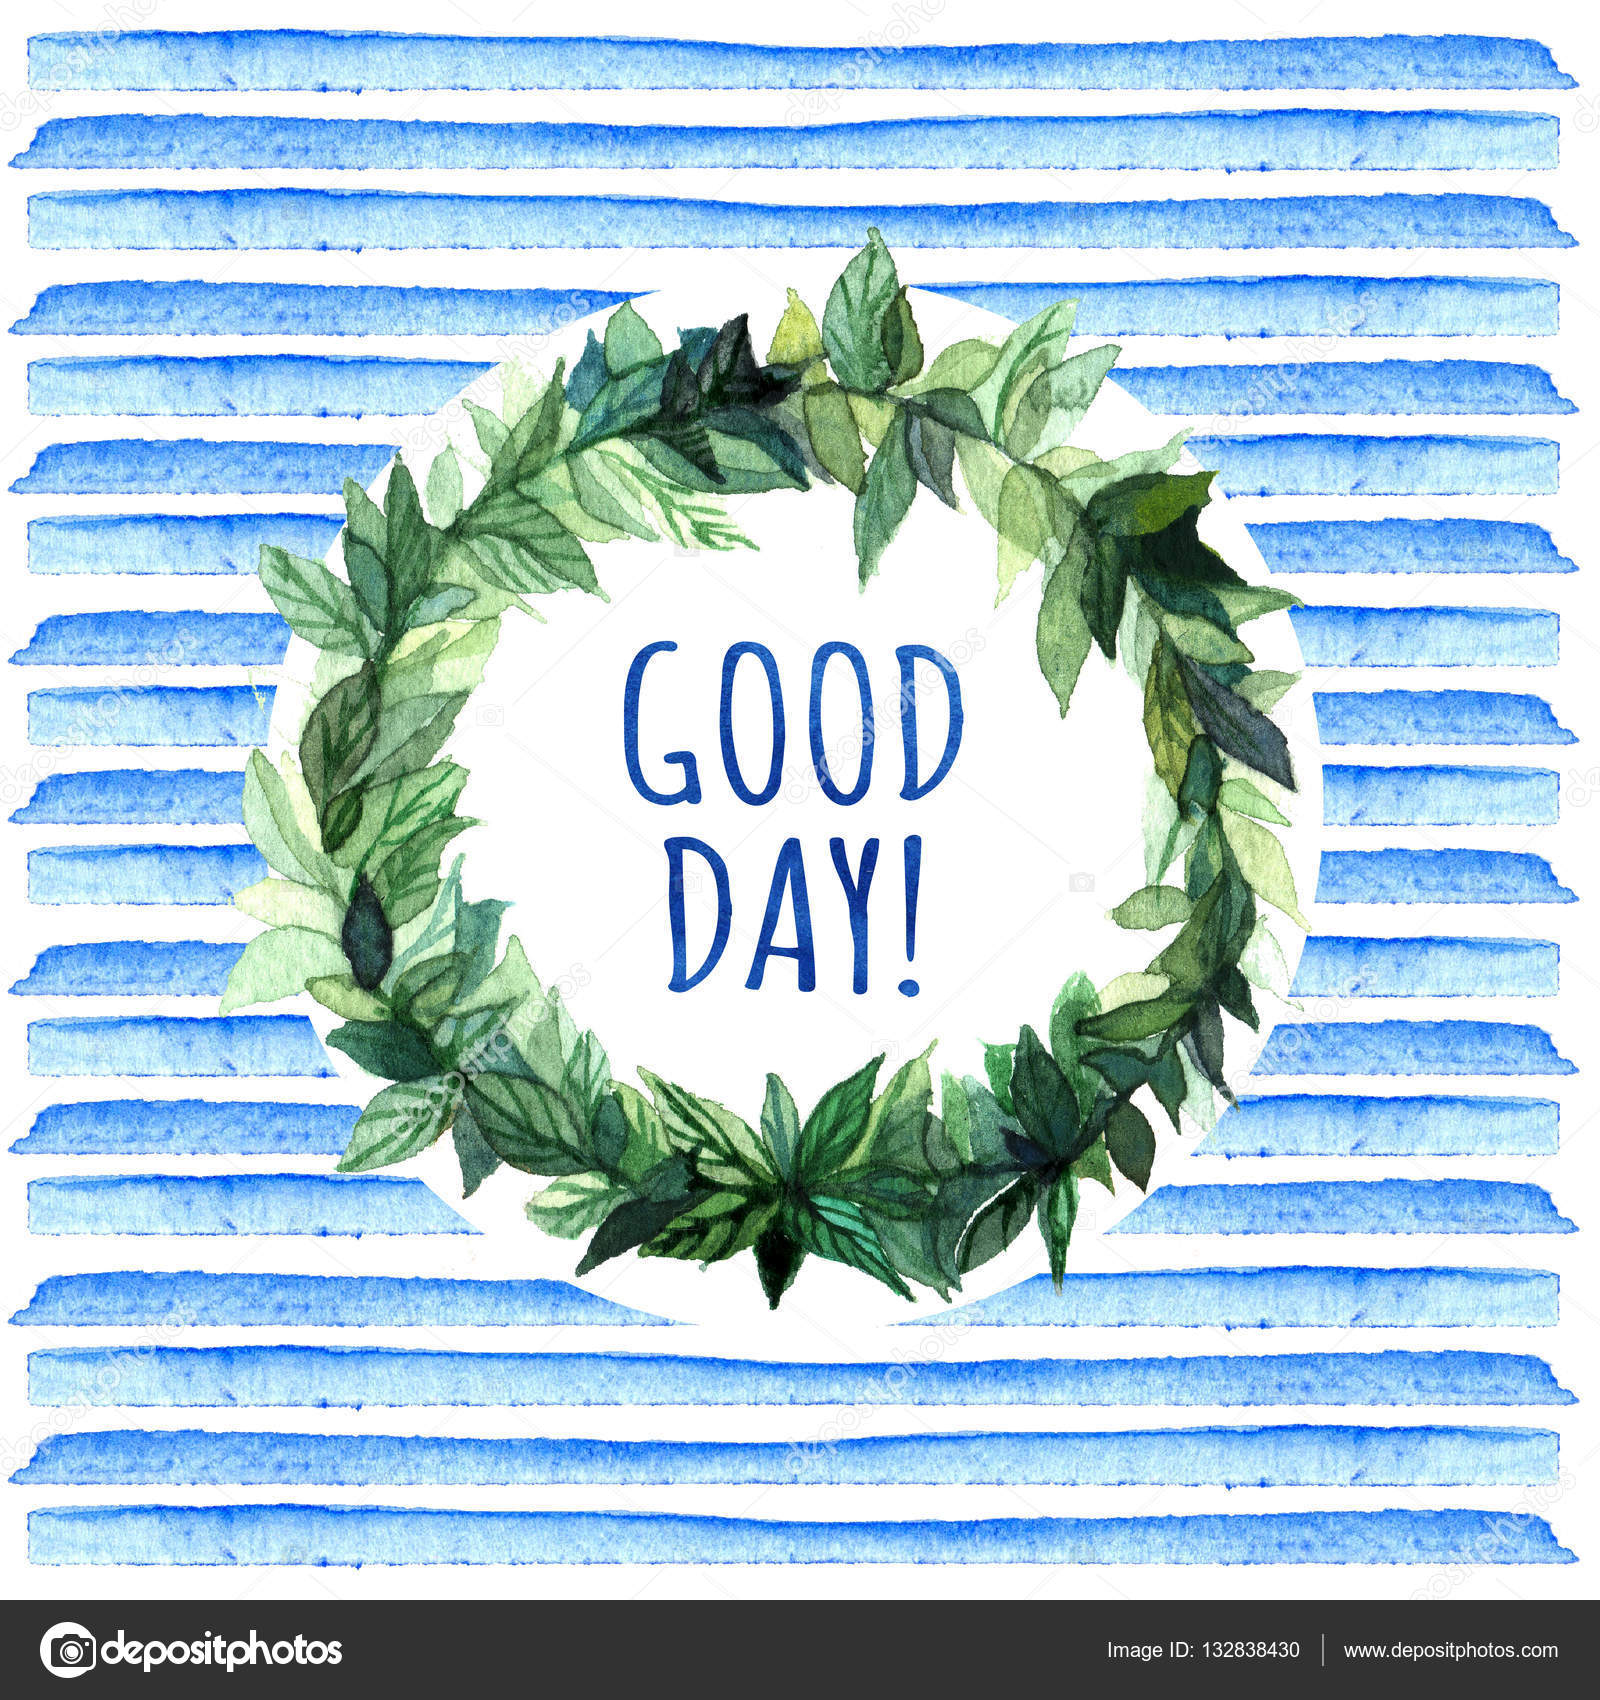 Good day simple and cute floral circle wreath with spring floral circle wreath with spring branches leaves good day watercolor creative greeting cards template retro style background element design for stickers kristyandbryce Gallery